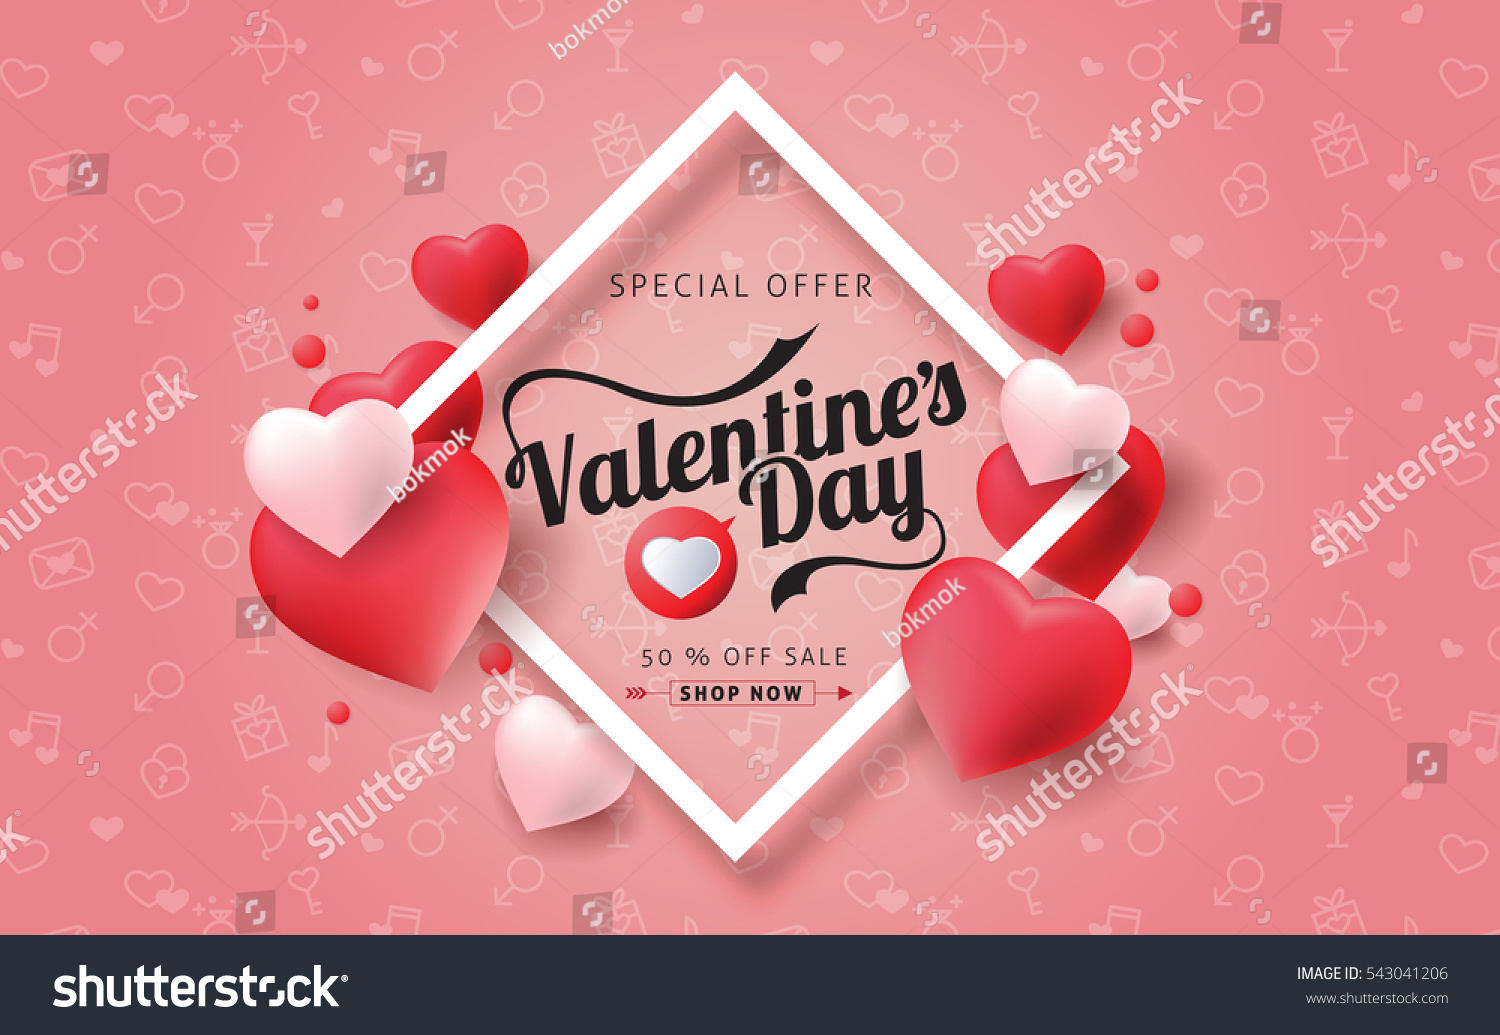 Valentines day sale background with balloons heart. Vector illustration. Wallpaper.flyers, invitation, posters, brochure, banners. #543041206